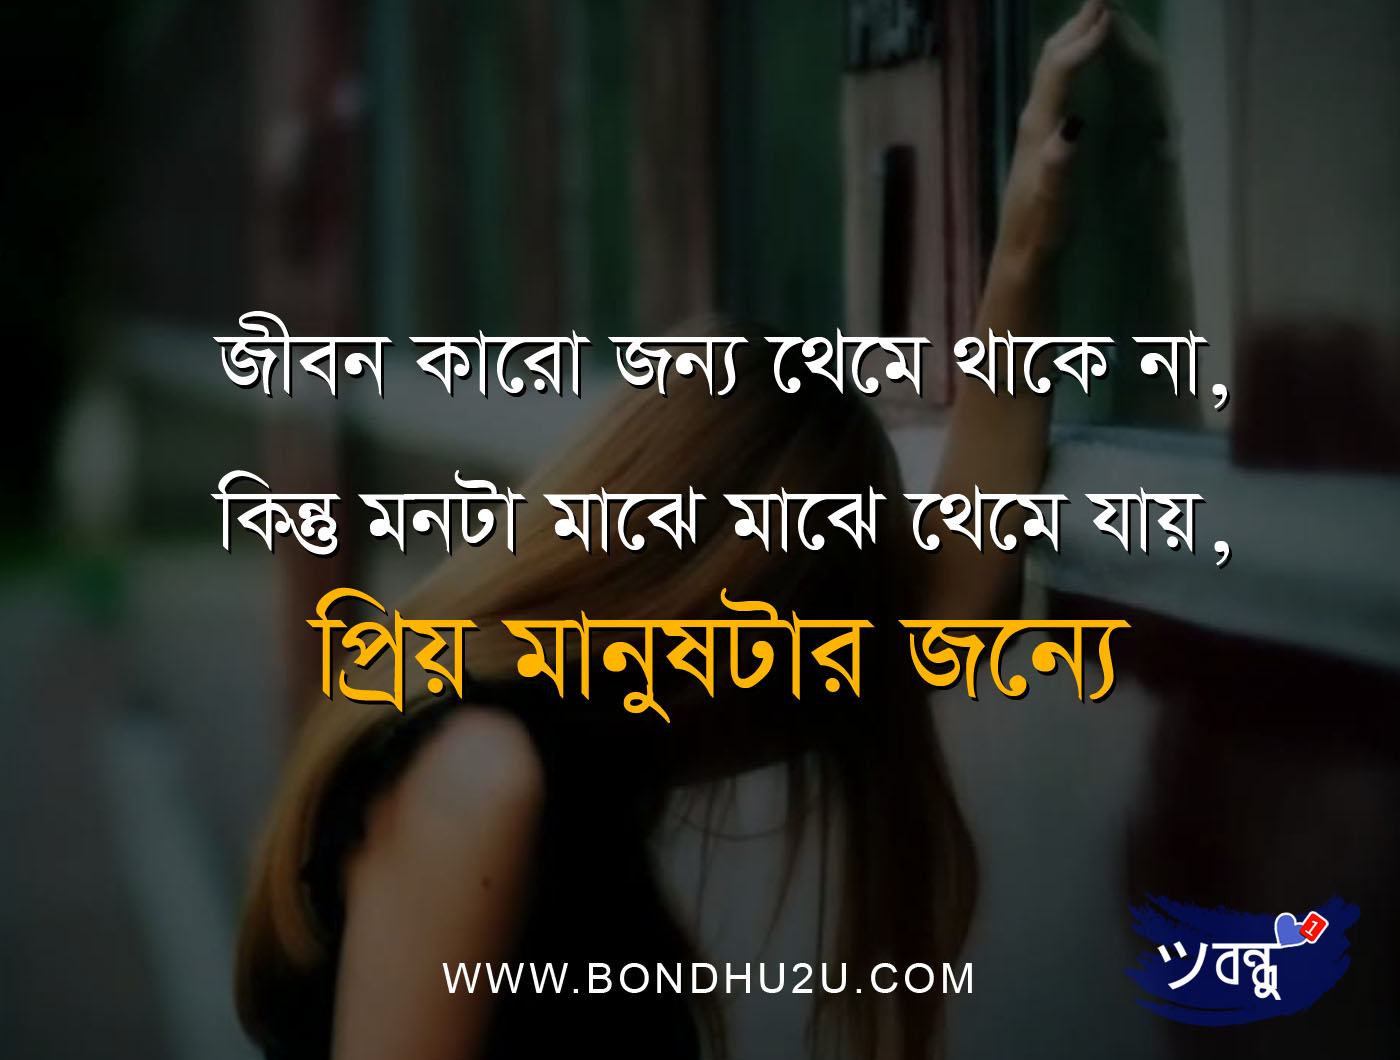 Funny Bengali Quotes About Life - Quotes Blog d